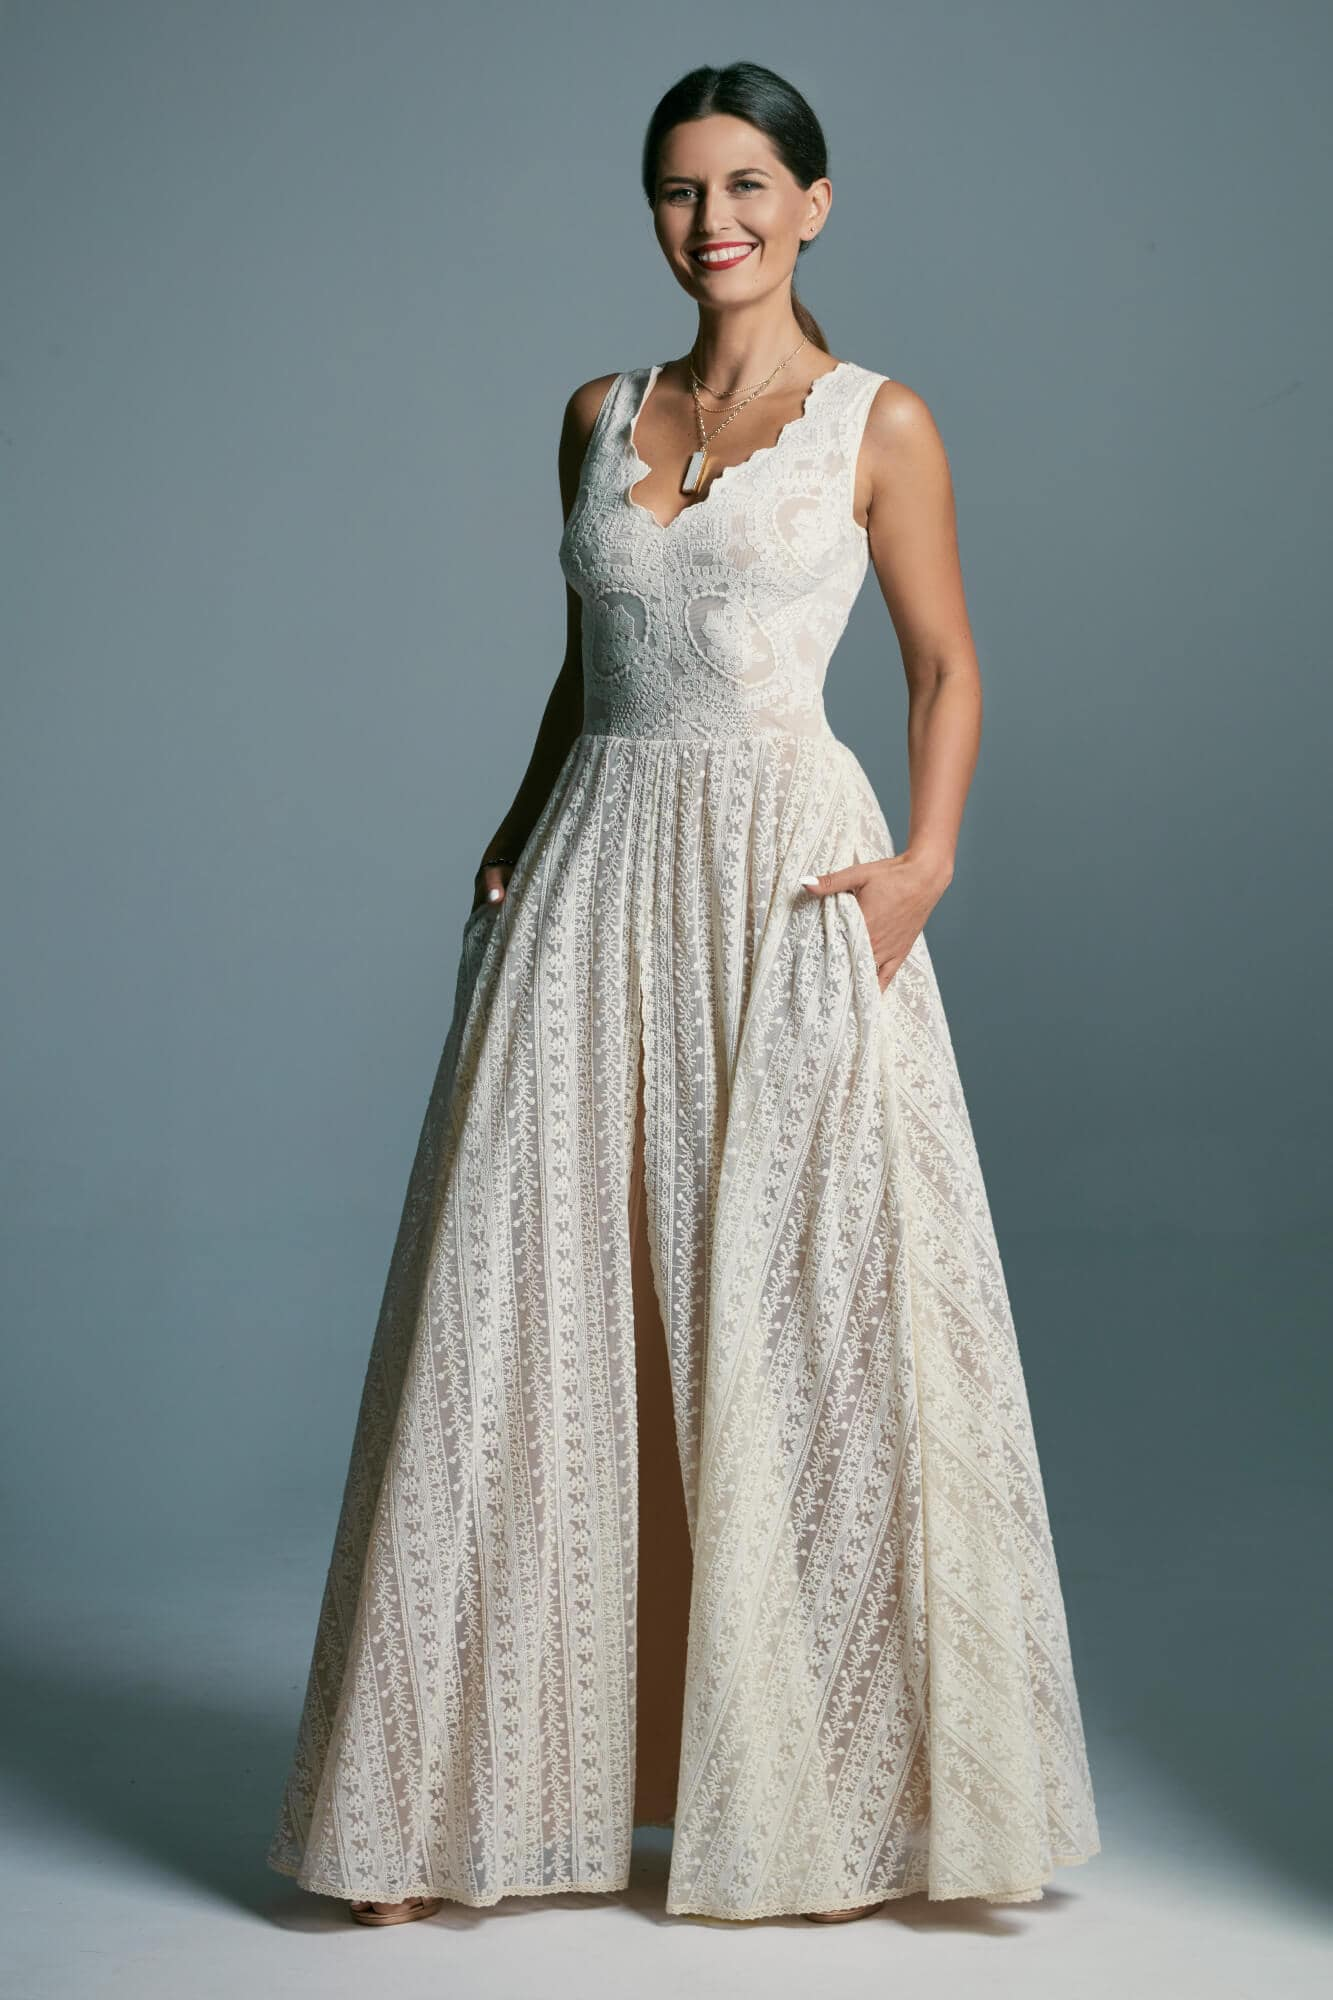 Hourglass-shaped wedding dress with wide straps Barcelona 13